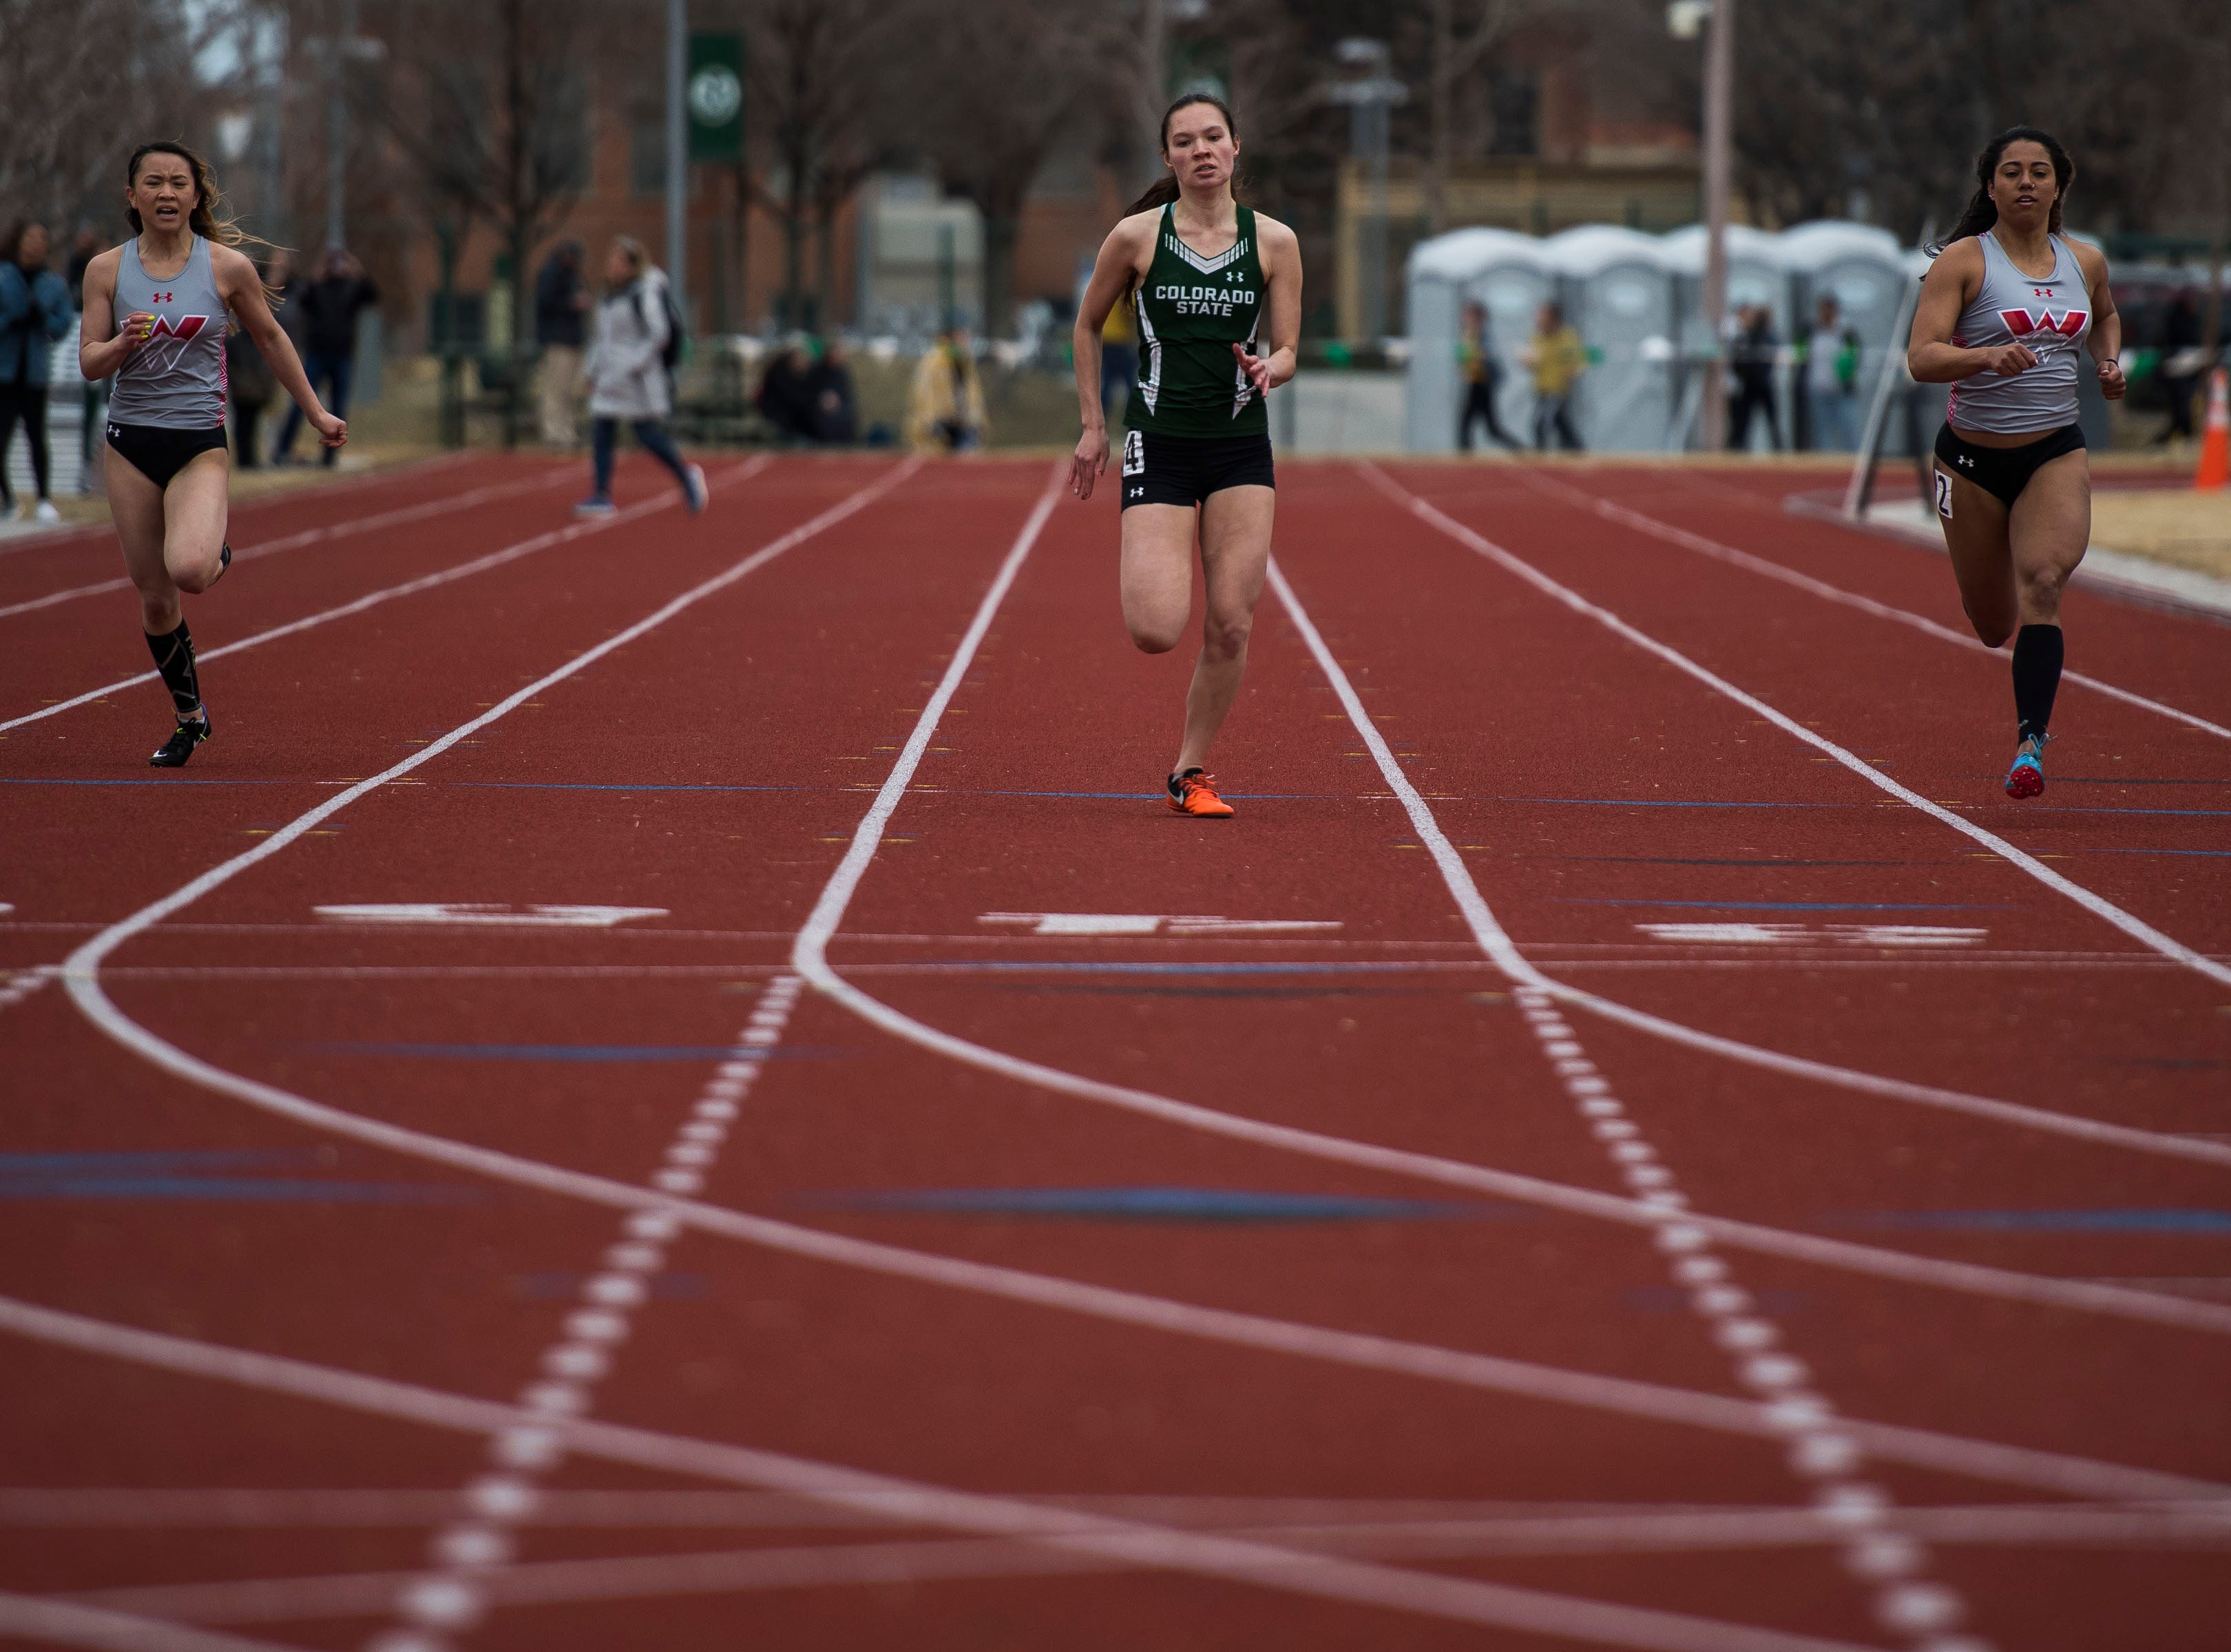 Colorado State University sophomore Krista Mayer competes in the women's 200-meter dash on Saturday, March 23, 2019, at the Jack Christiansen Memorial Track in Fort Collins, Colo.